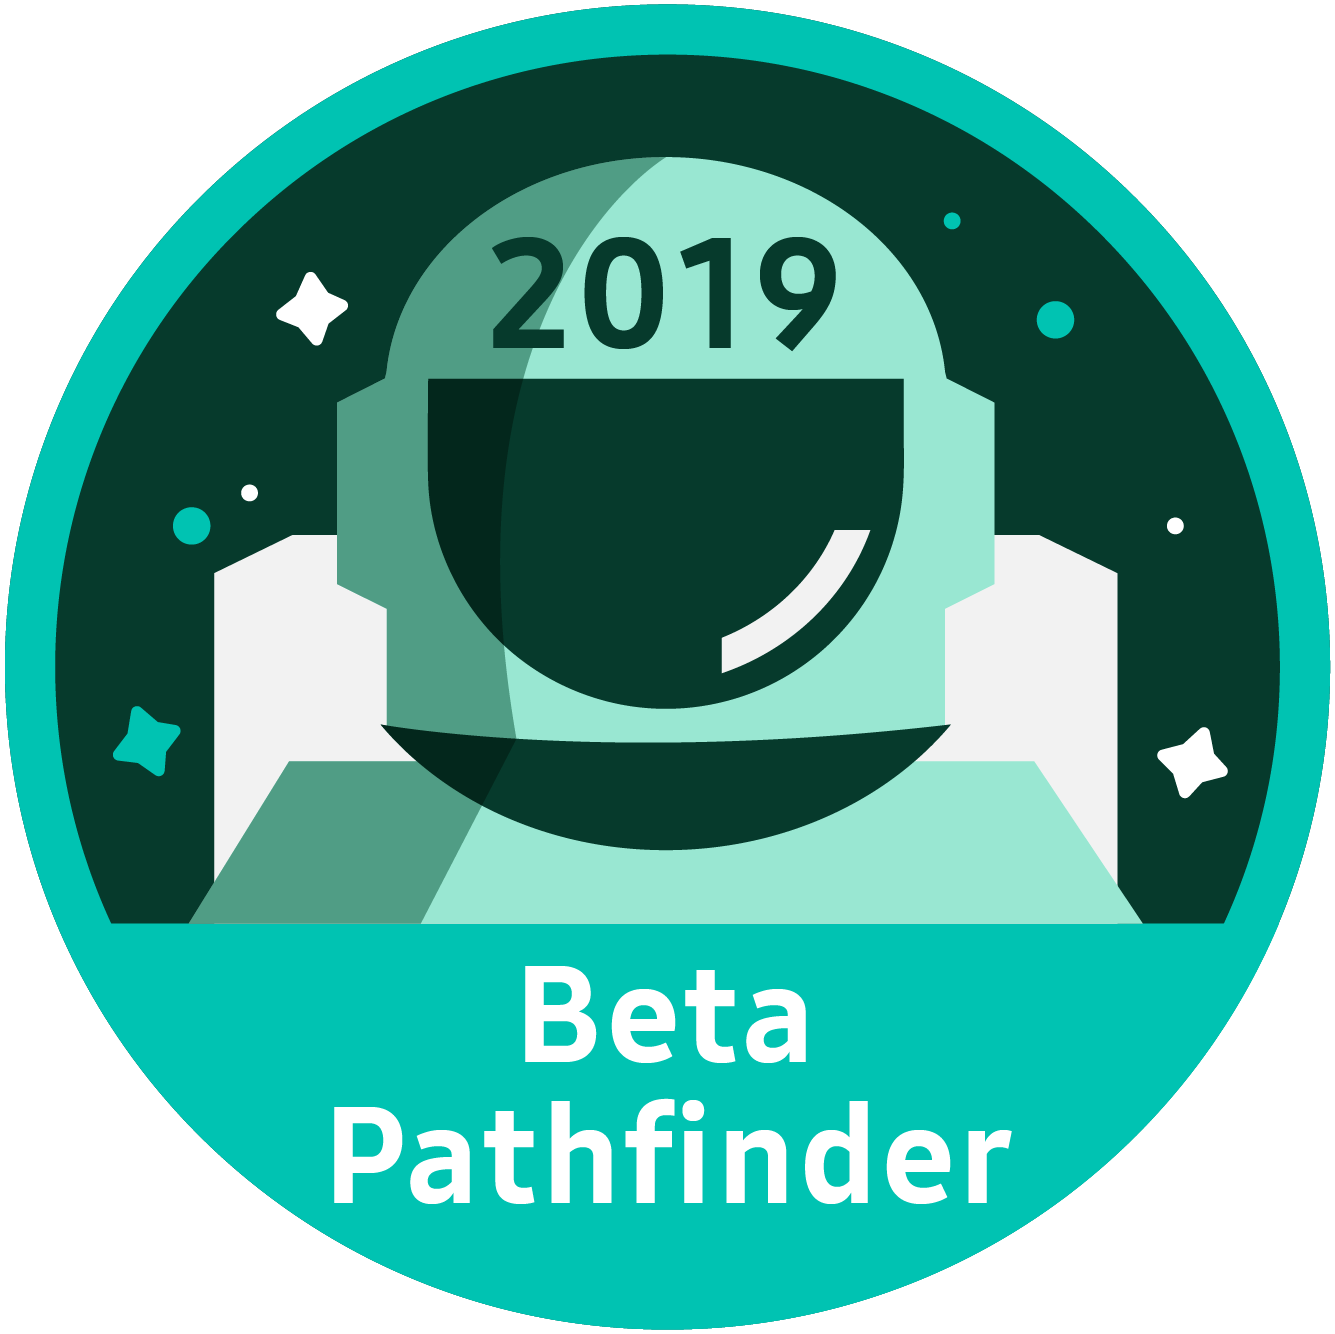 Beta Pathfinder 2019